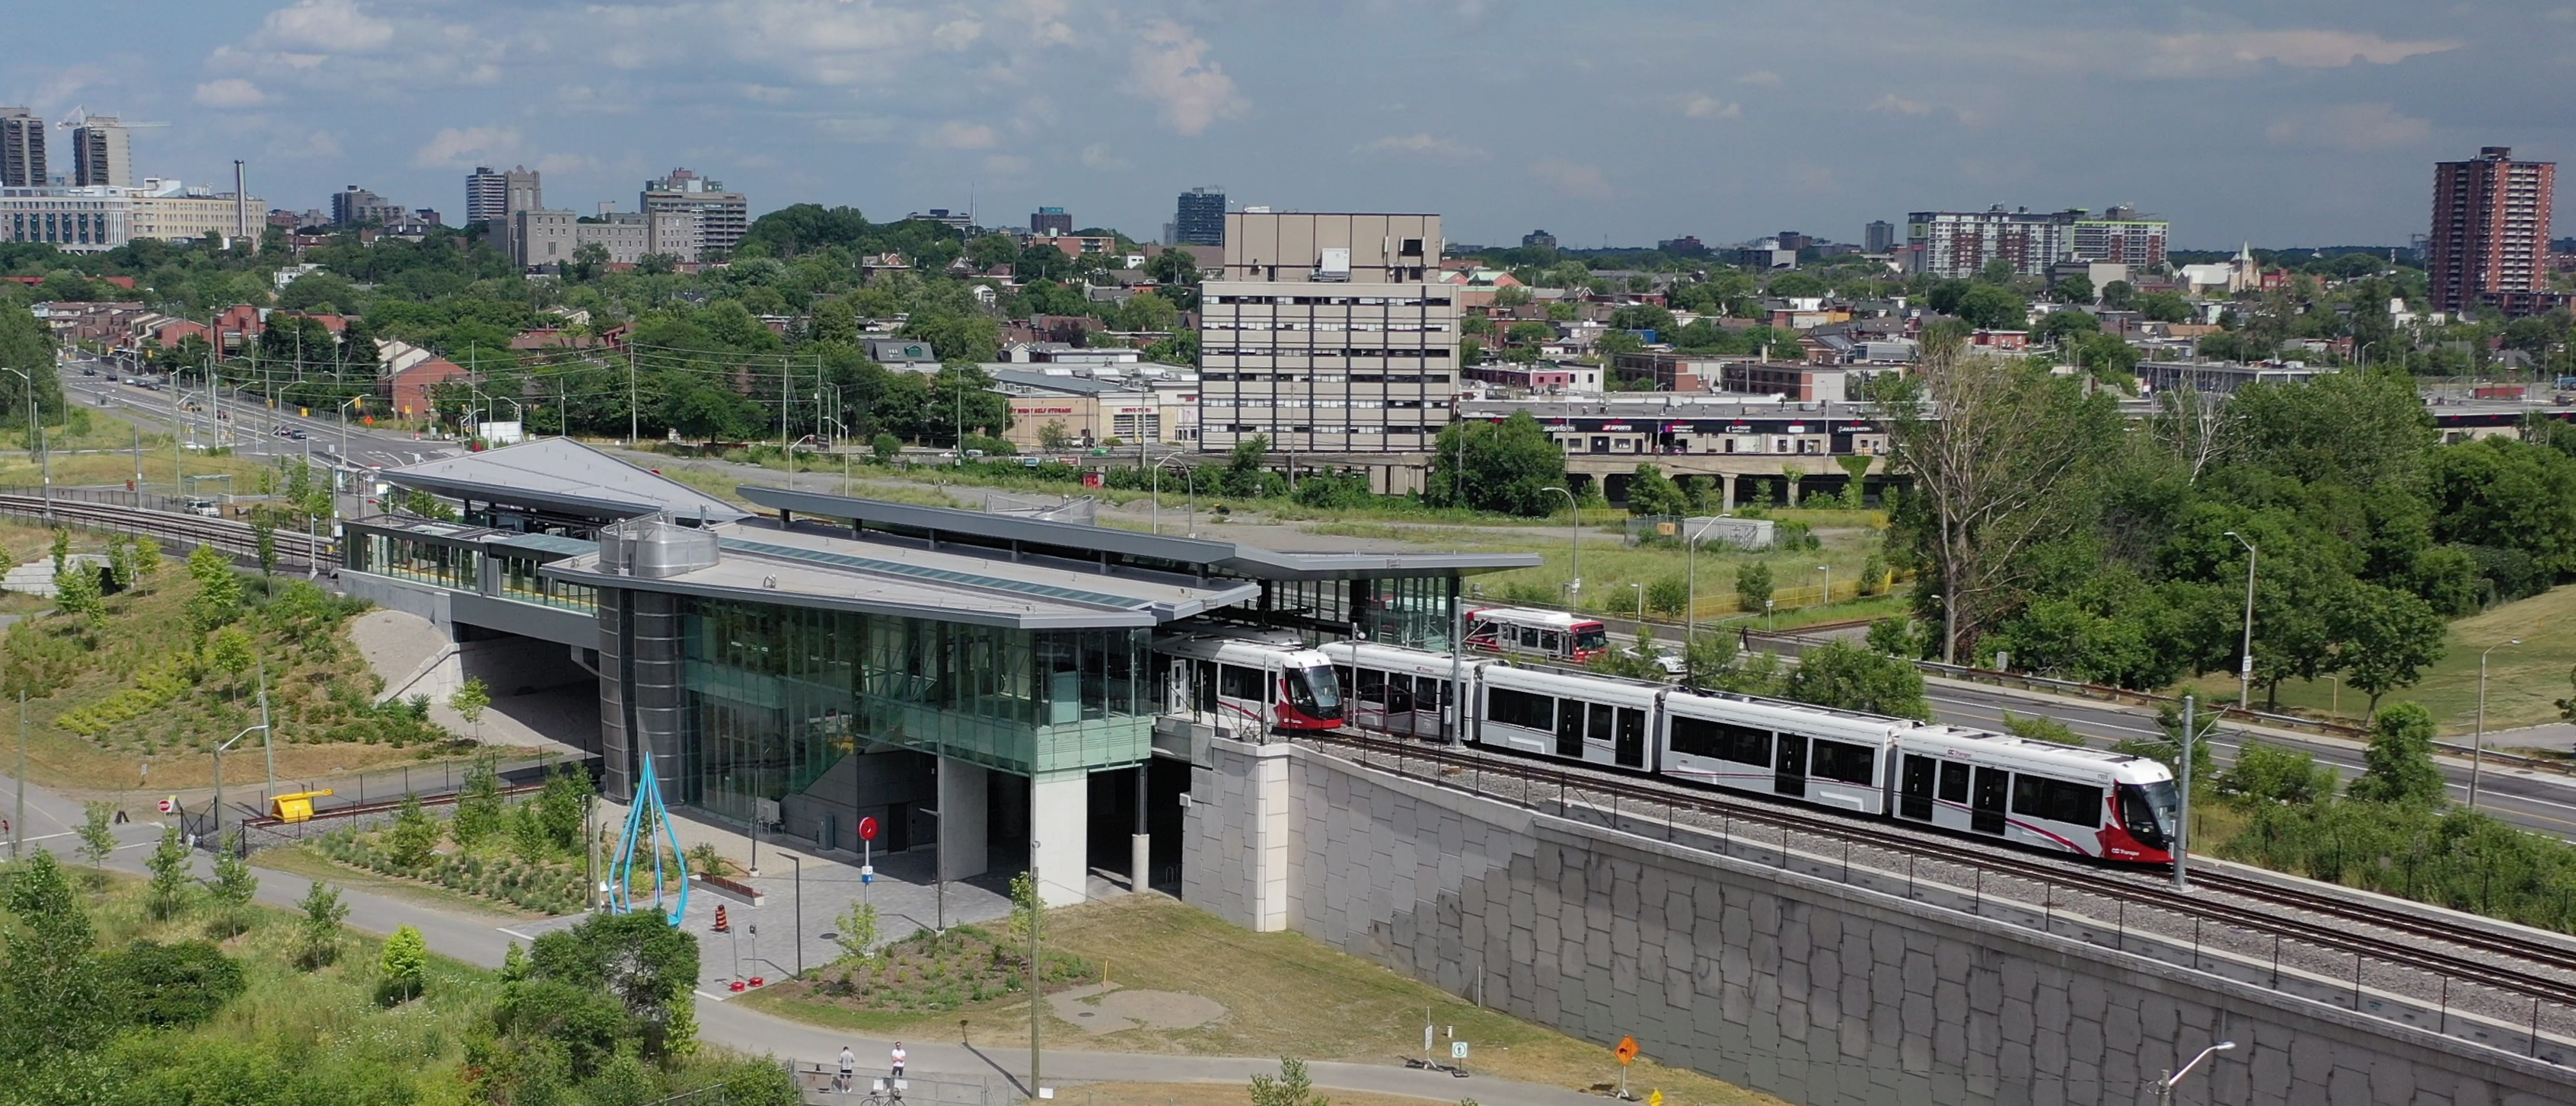 Your gameday ticket gets you a free ride on the LRT - Ottawa REDBLACKS